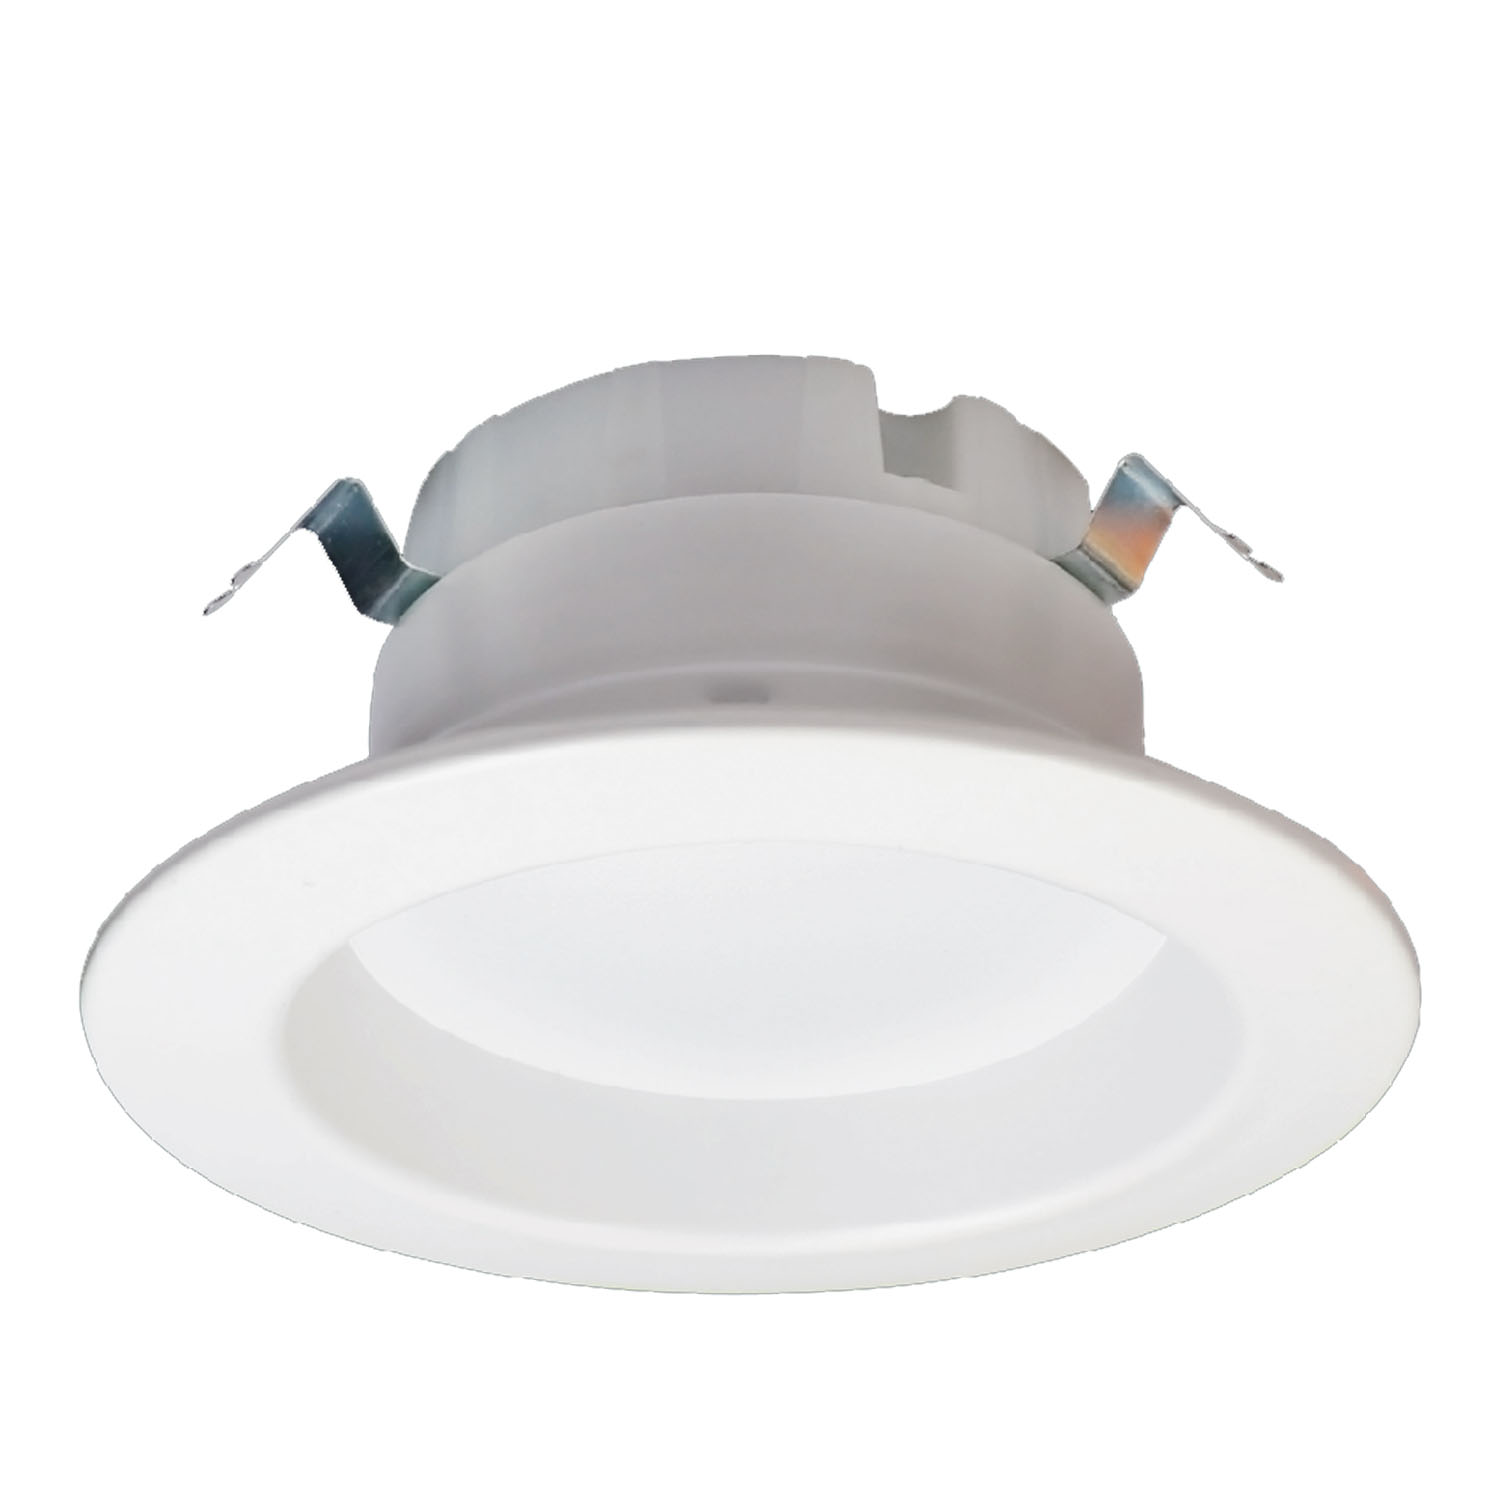 "DL4FR10/950/ECO/LED2 99636 4"" Retrofit Downlight, 10W, 5000K, Dimmable ProLED ECO Series II"